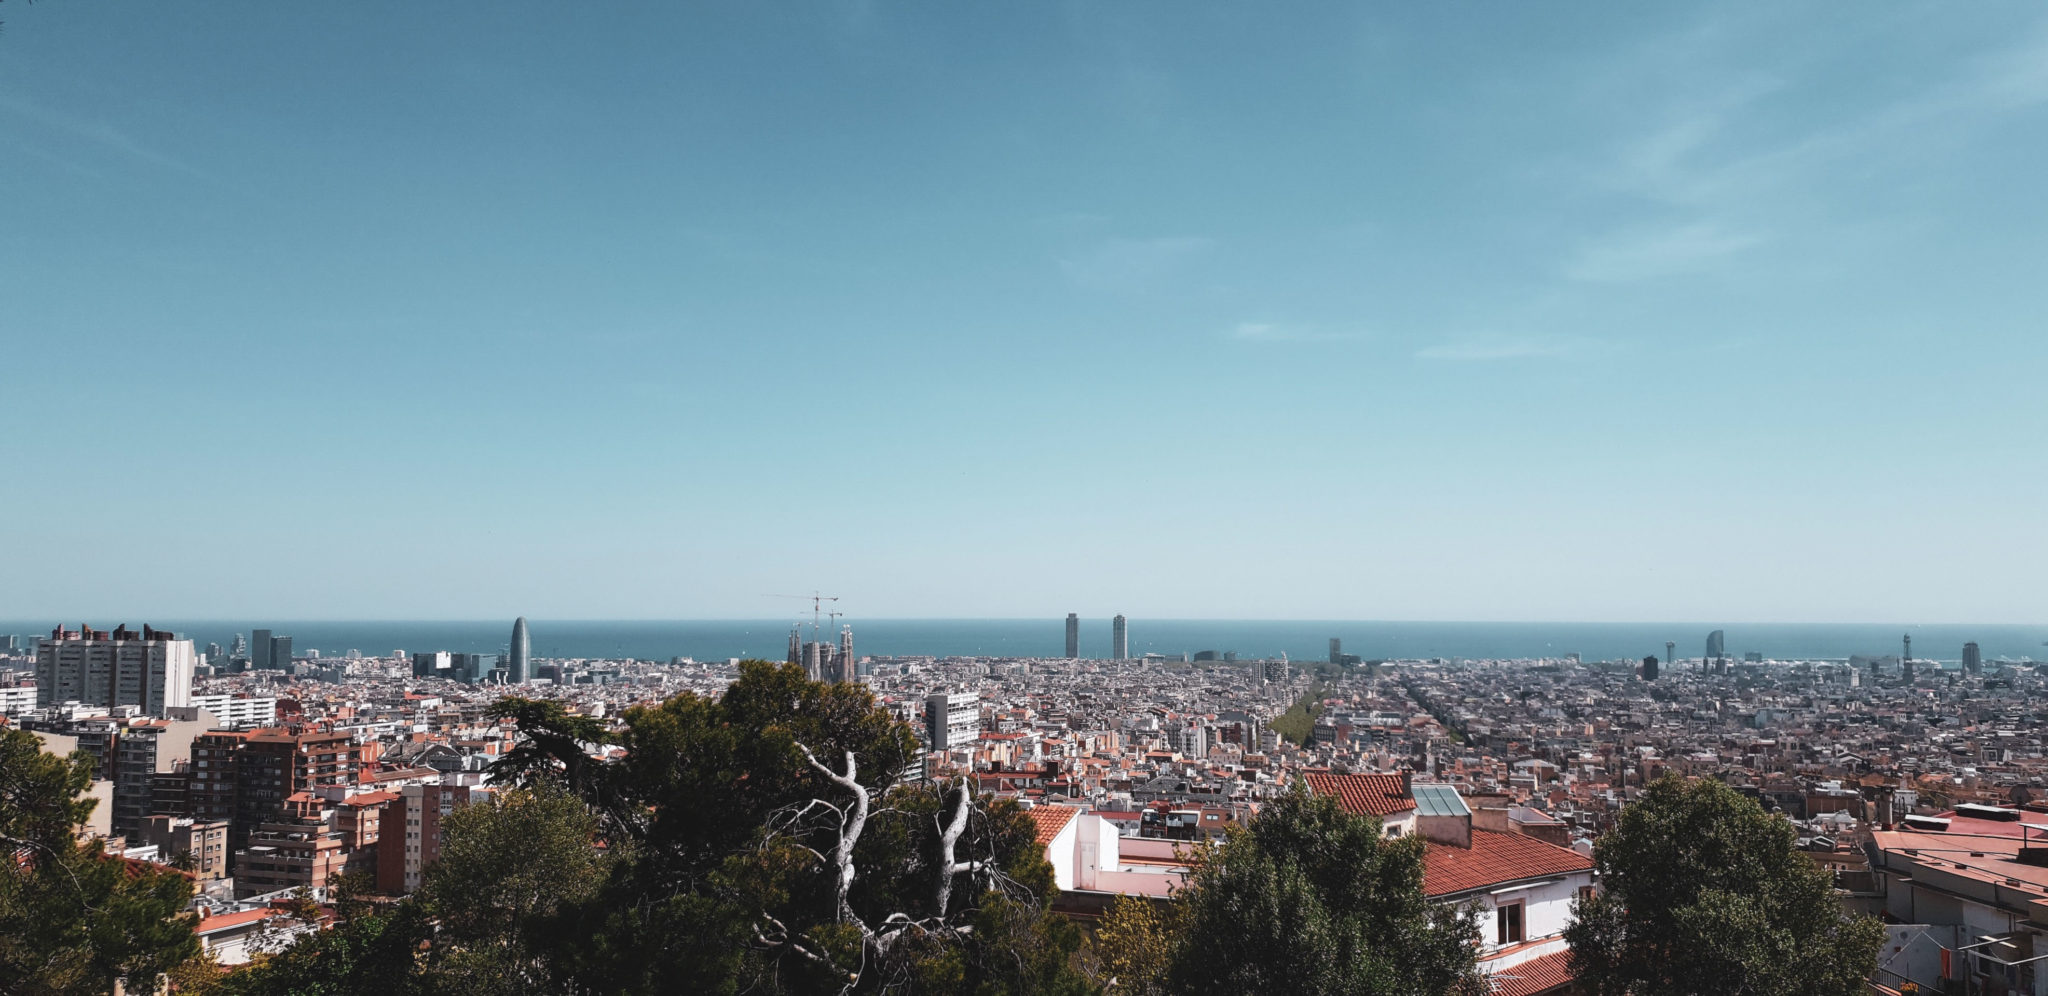 Barcelona travel guide by Michaella and Lina from Bulgarian lifestyle blog Quite a Looker / View from Park Güell